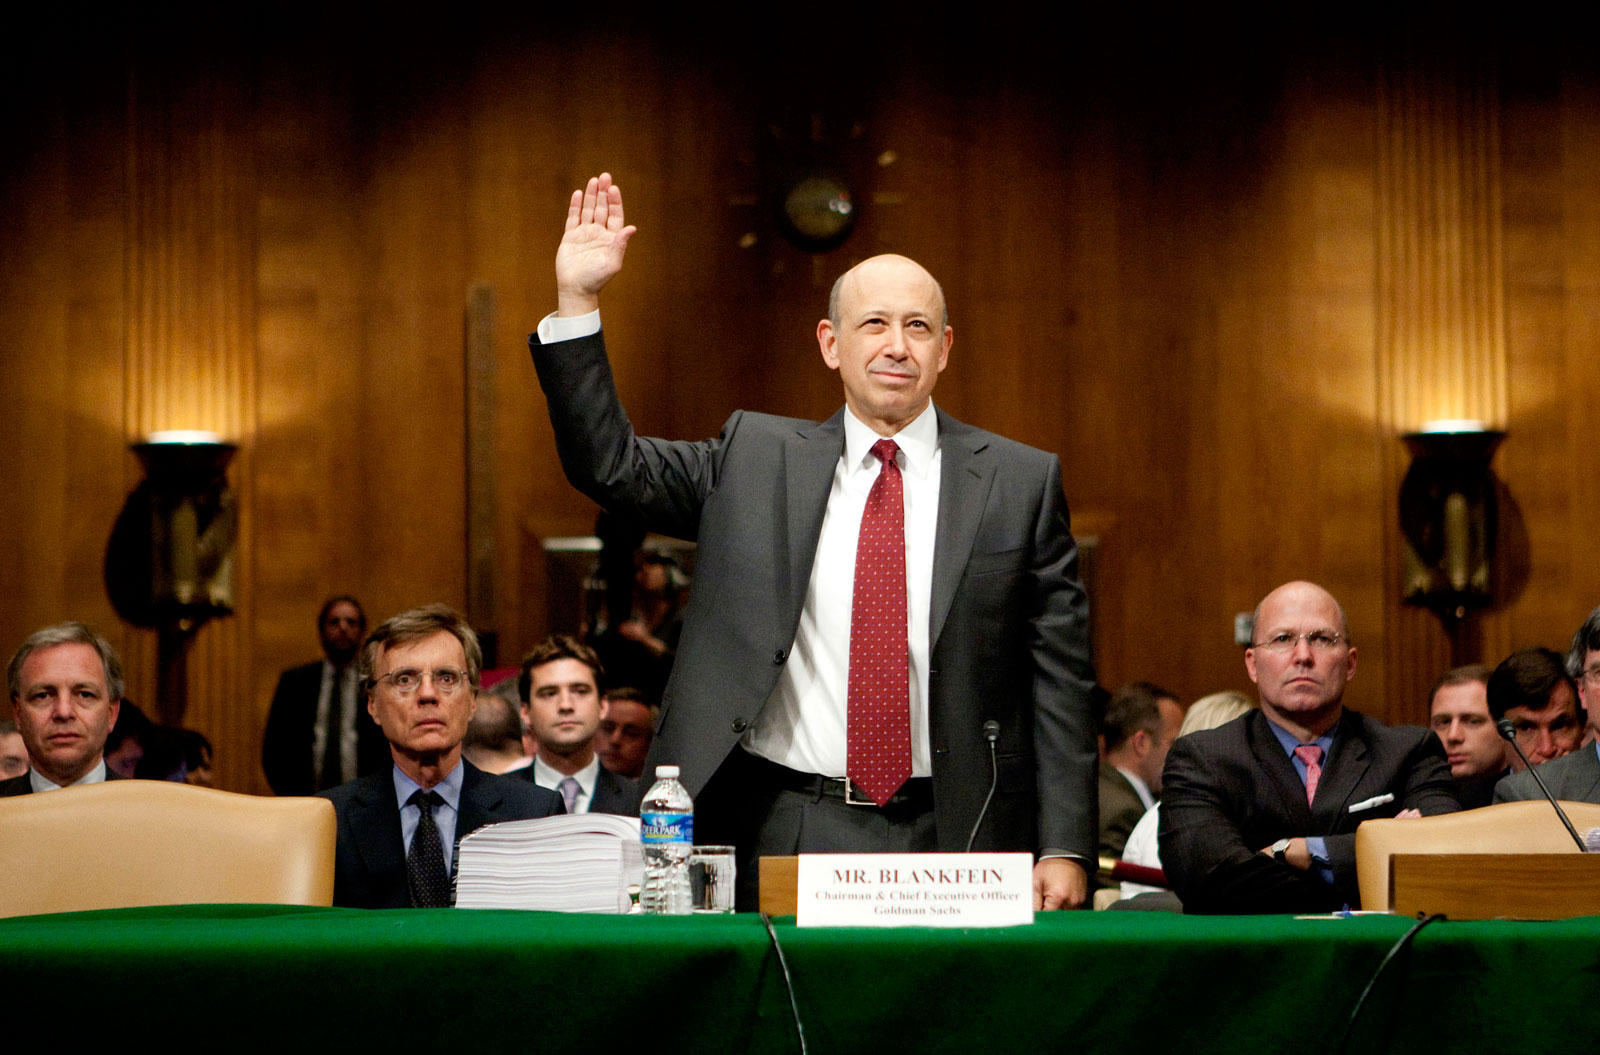 Goldman Sachs CEO Lloyd Blankfein, being sworn in at a Senate hearing on the financial crisis, Washington, D.C., April 27, 2010